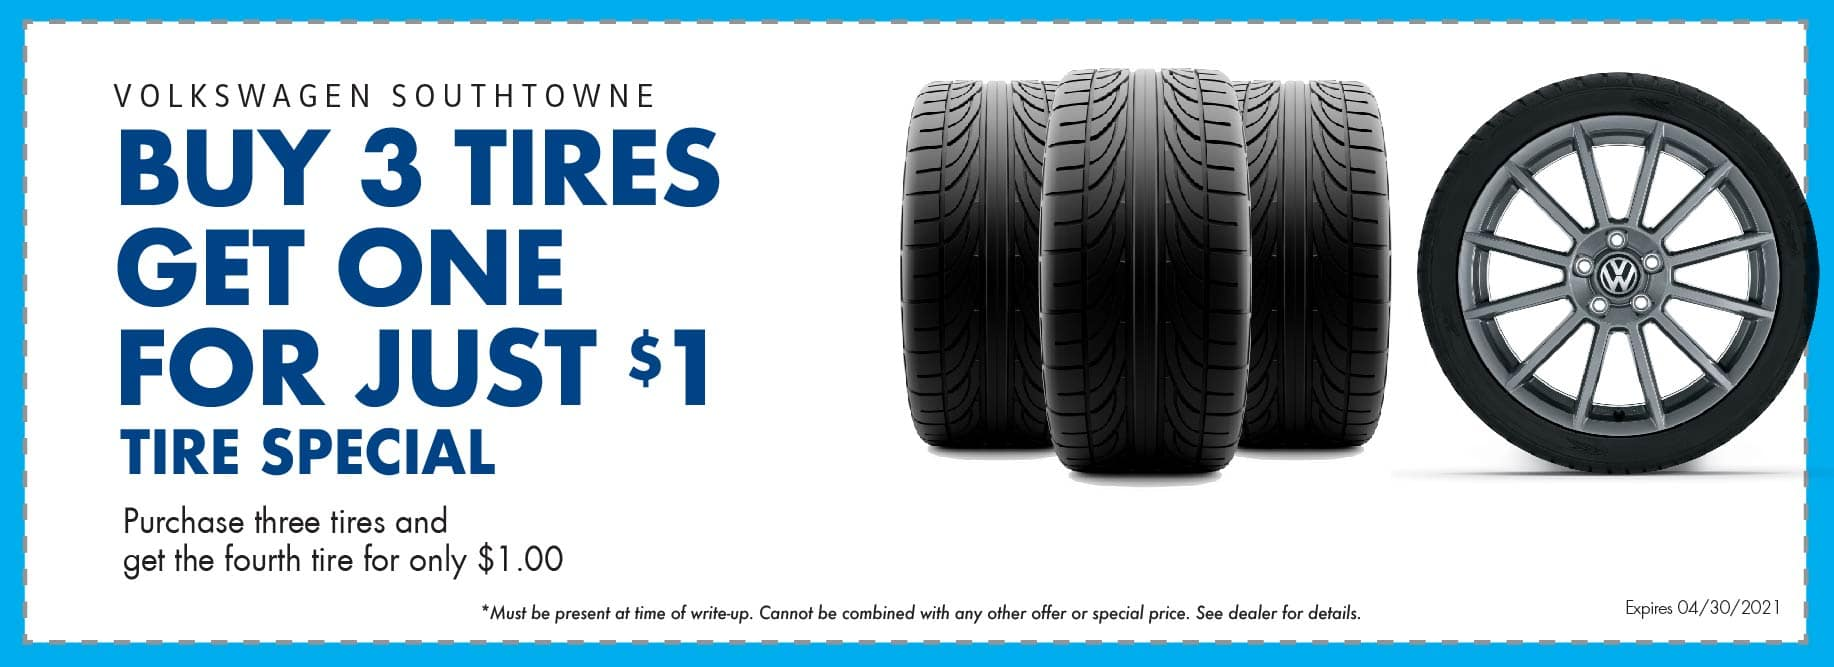 Buy 3 tires and get the 4th for only $1 at Volkswagen SouthTowne.